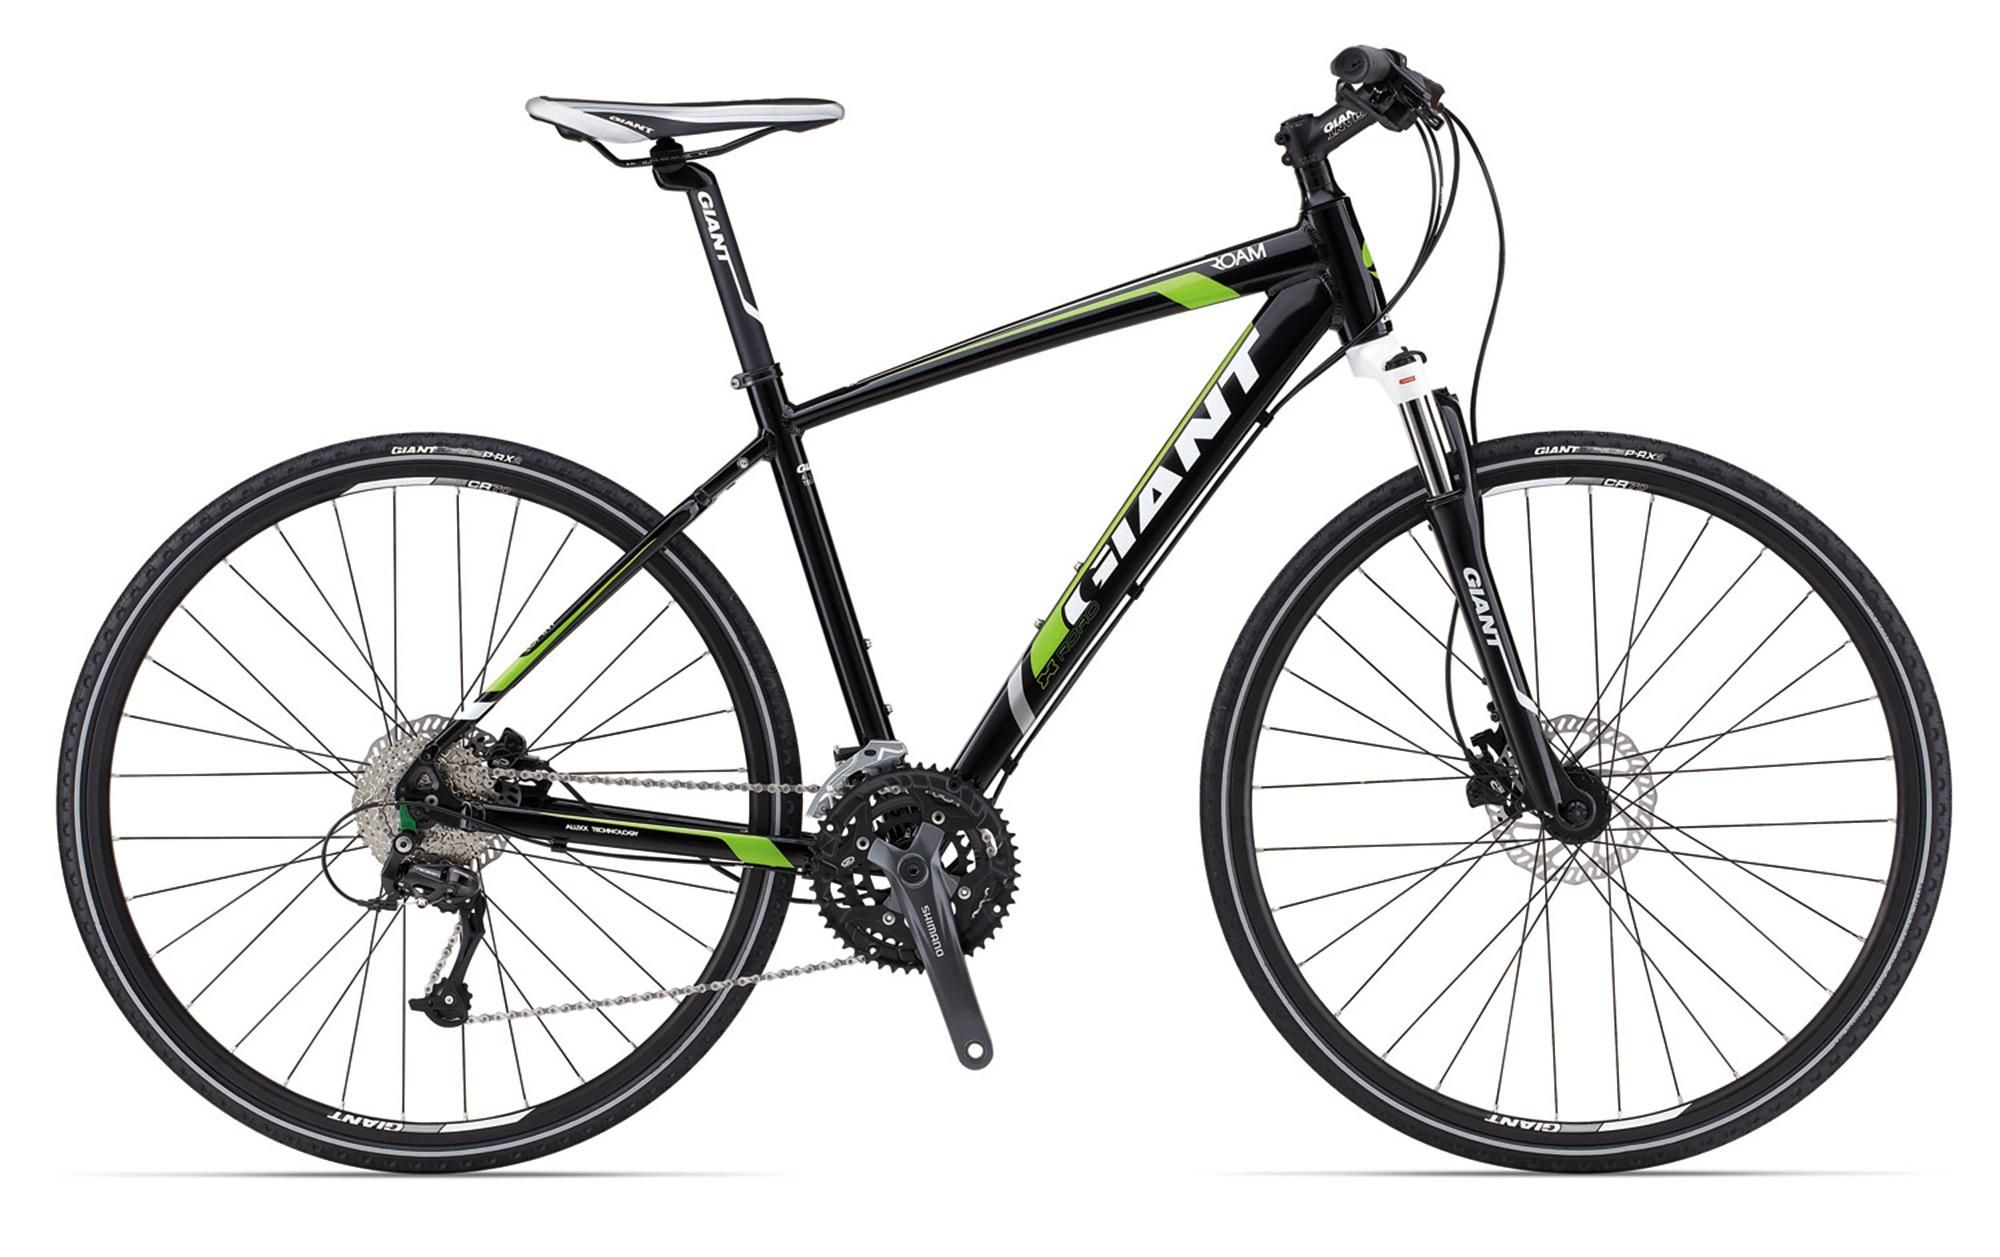 Giant Roam 2 499 Lighter Than Most Bikes At This Price Point And Also Higher Specced 9spd Shimano Gears Lockout Fo Giant Bikes Giant Bicycle Commuter Bike